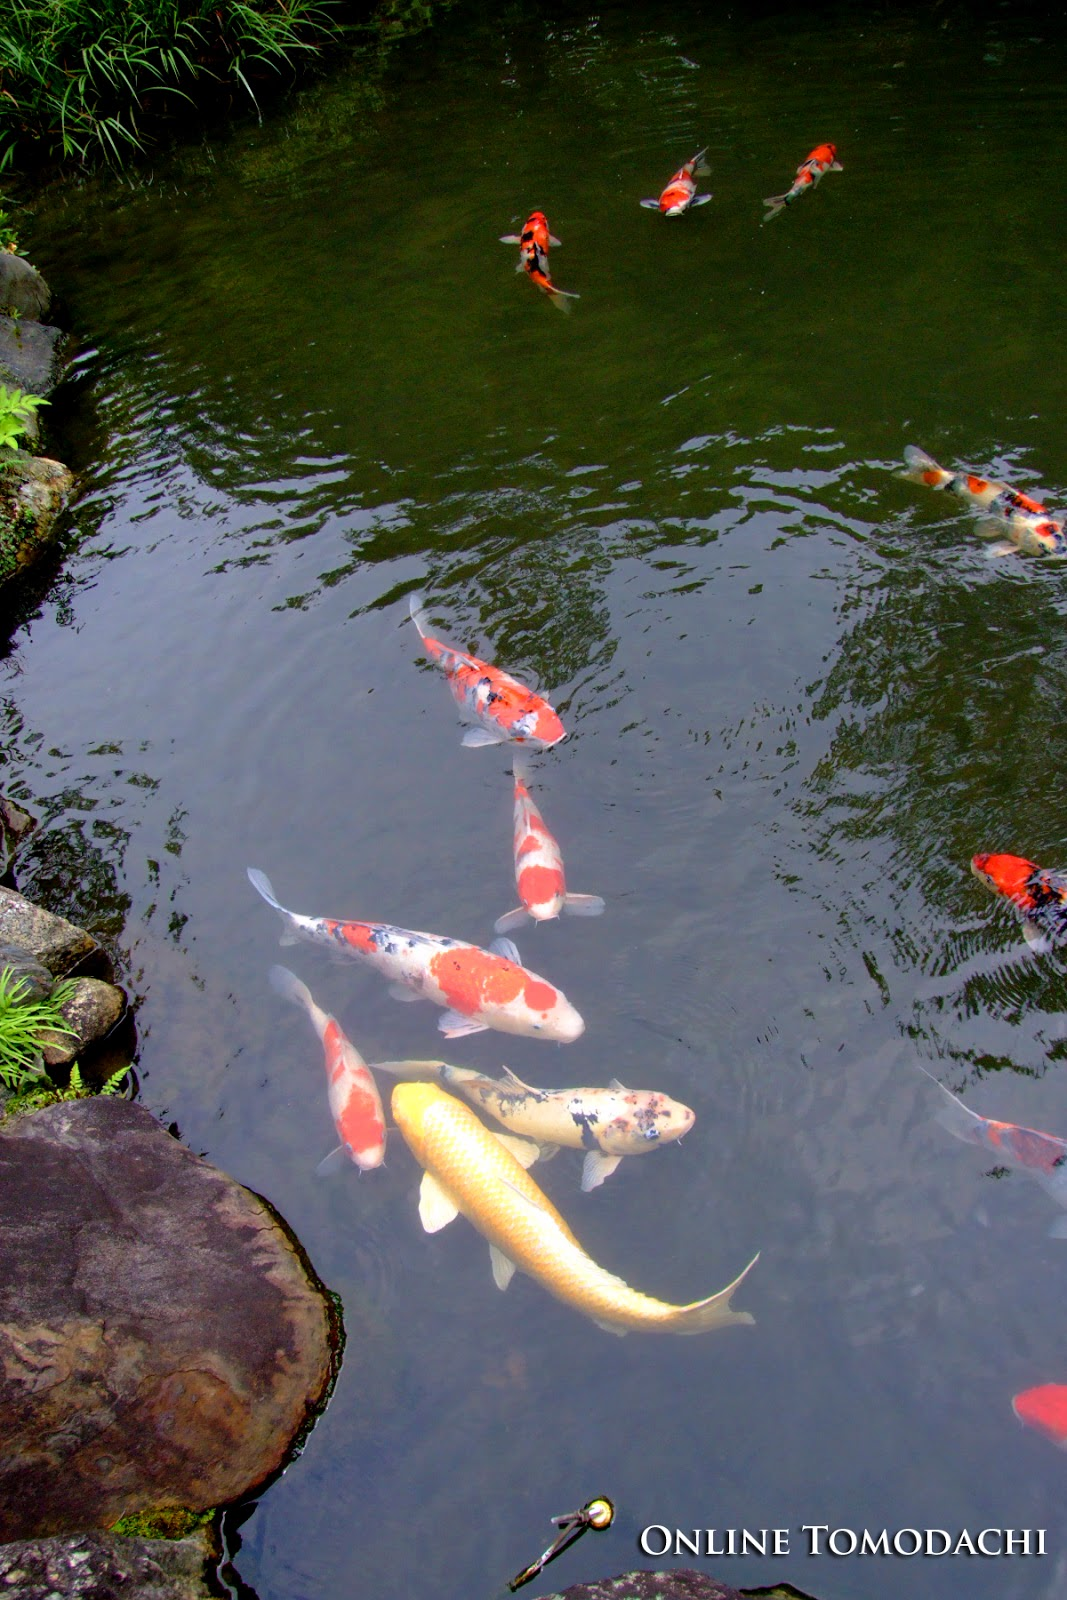 Online tomodachi japanese koi for Japanese koi